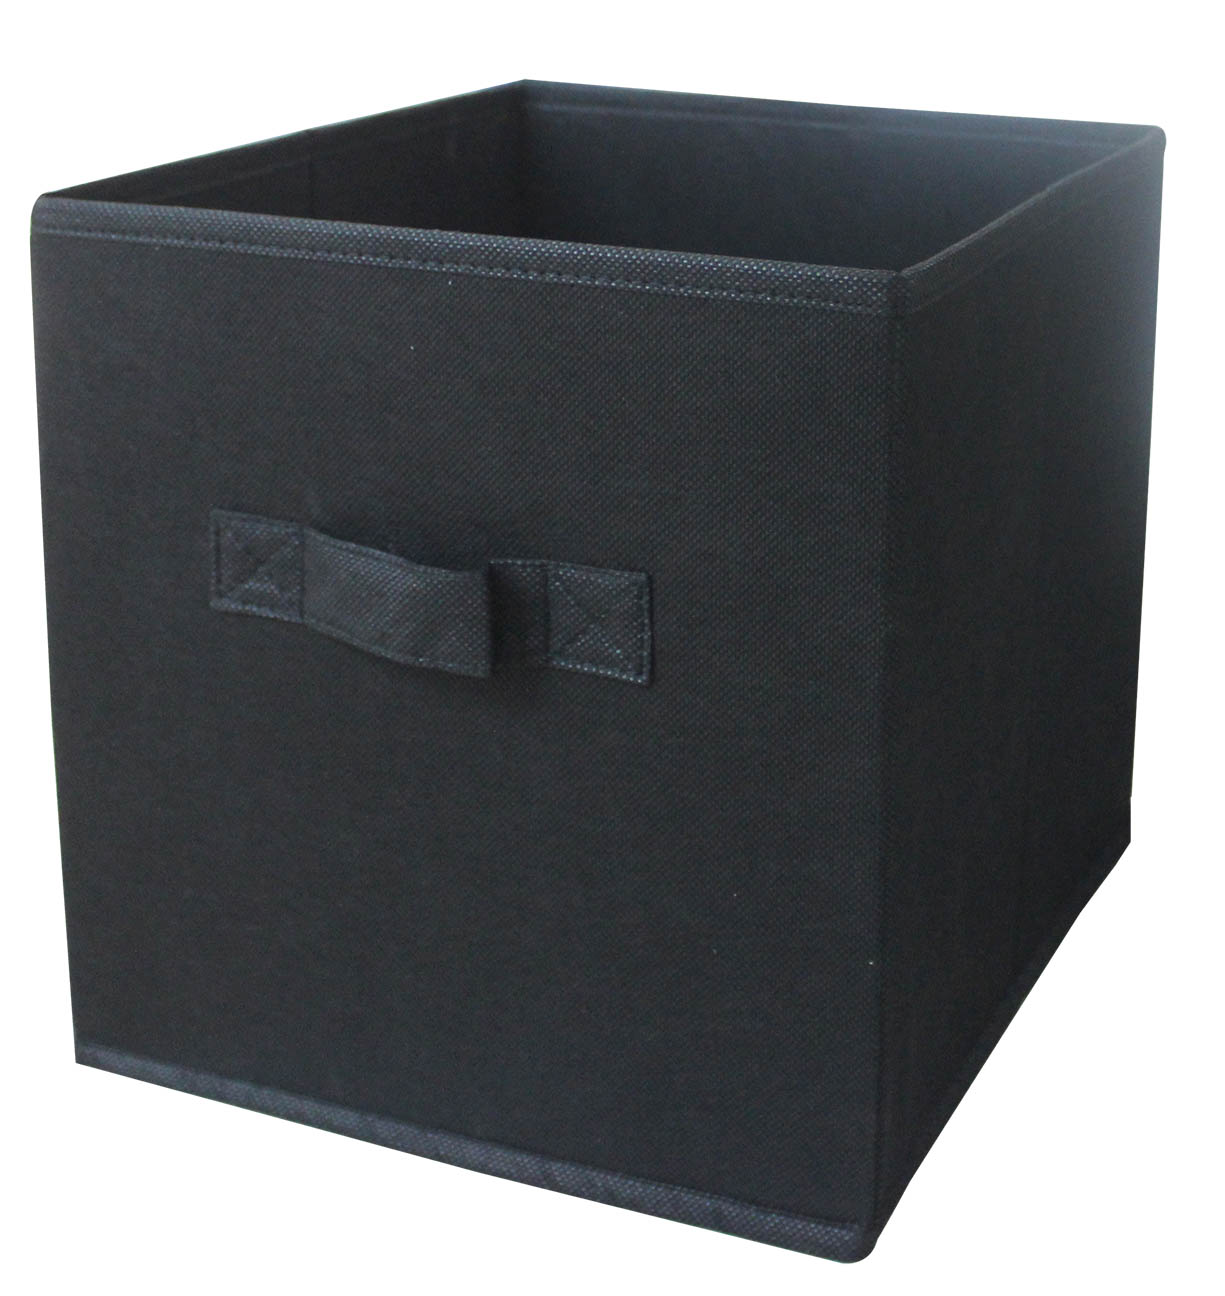 """Mainstays collapsible 10.5"""" x 10.5"""" cube storage bins, Single, Multi color"""